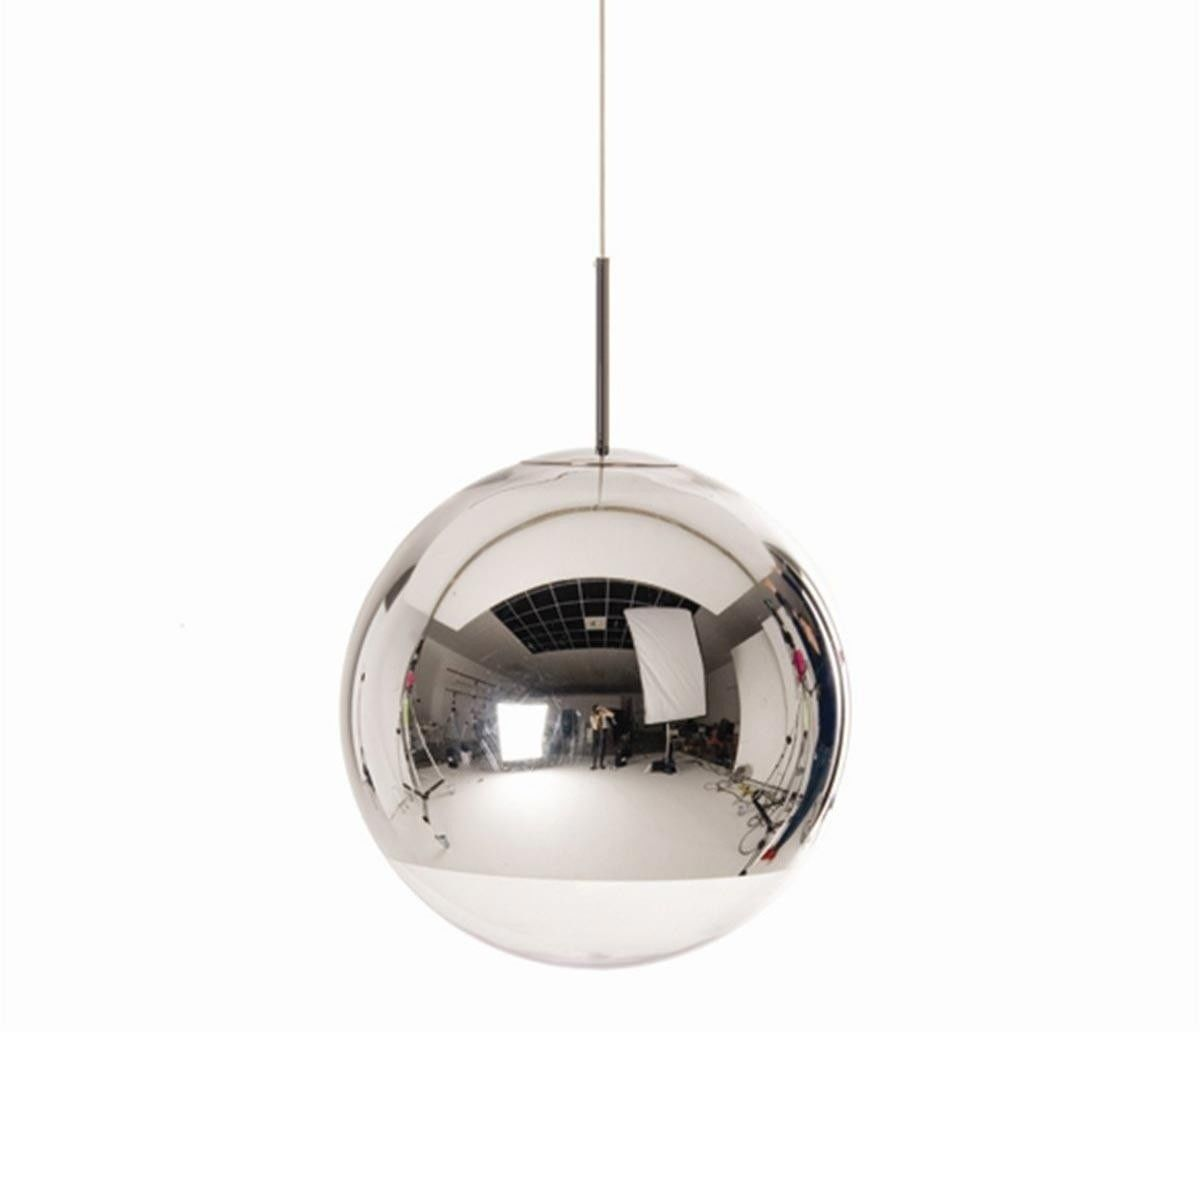 mirror ball pendant suspension lamp chrome tom dixon. Black Bedroom Furniture Sets. Home Design Ideas